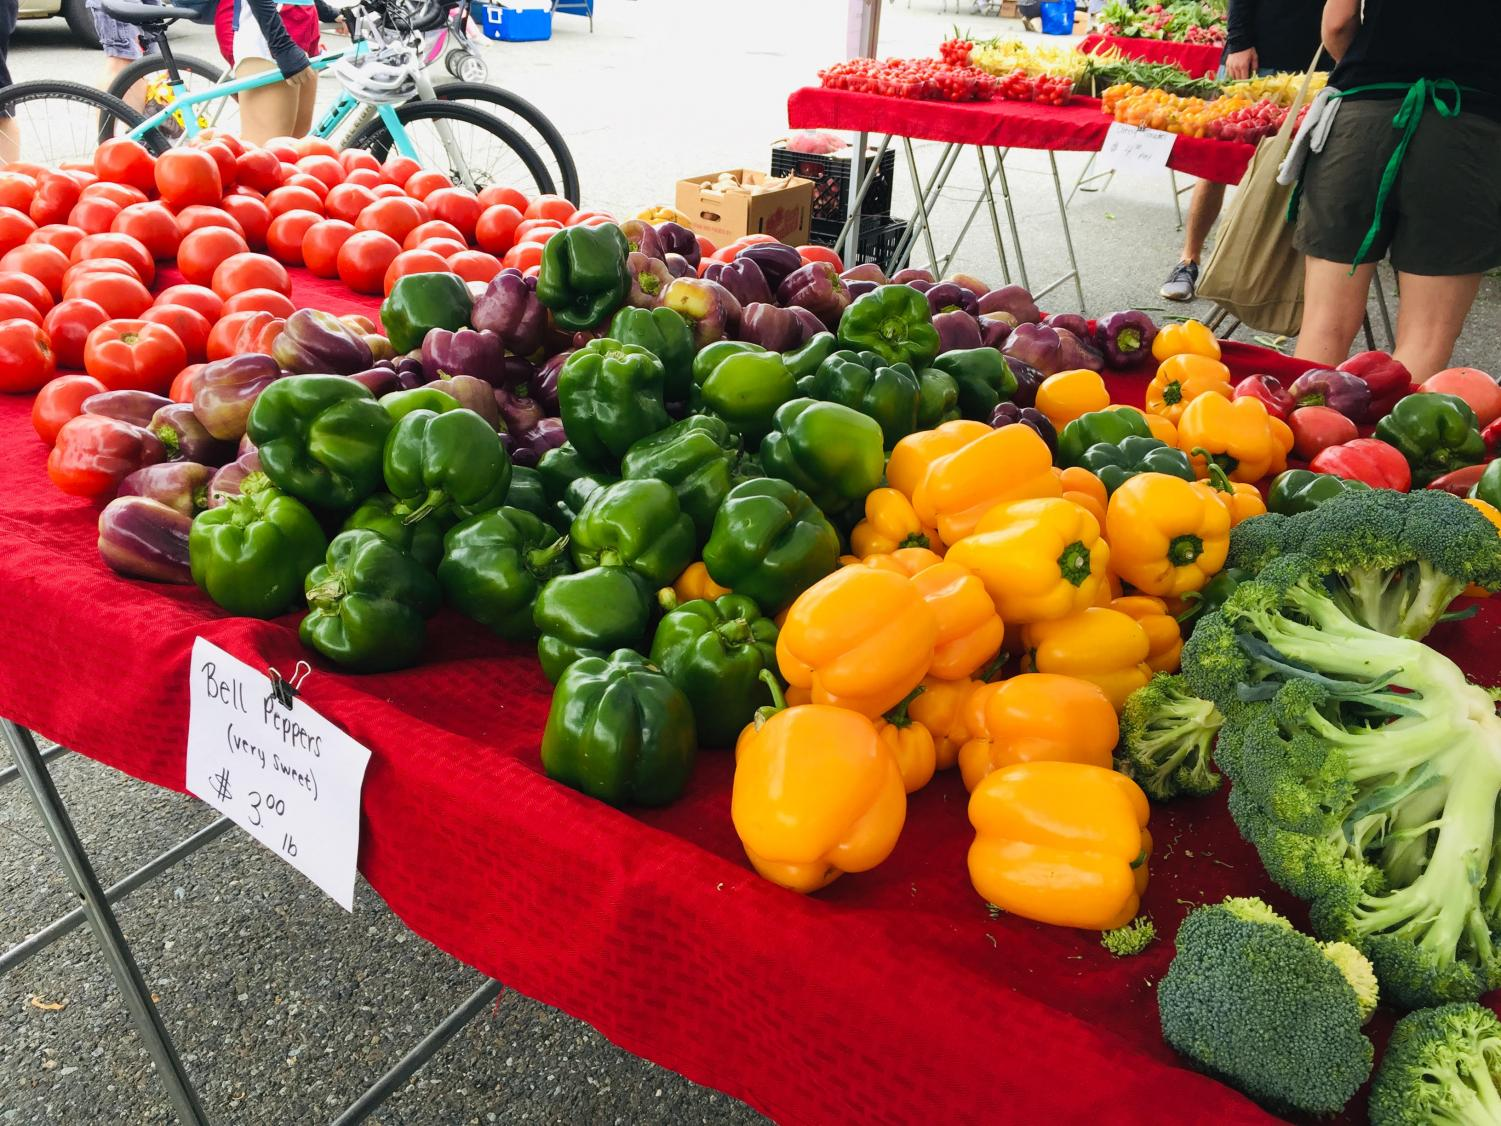 A vendor offers a wide selection of bell peppers for sale to buyers.